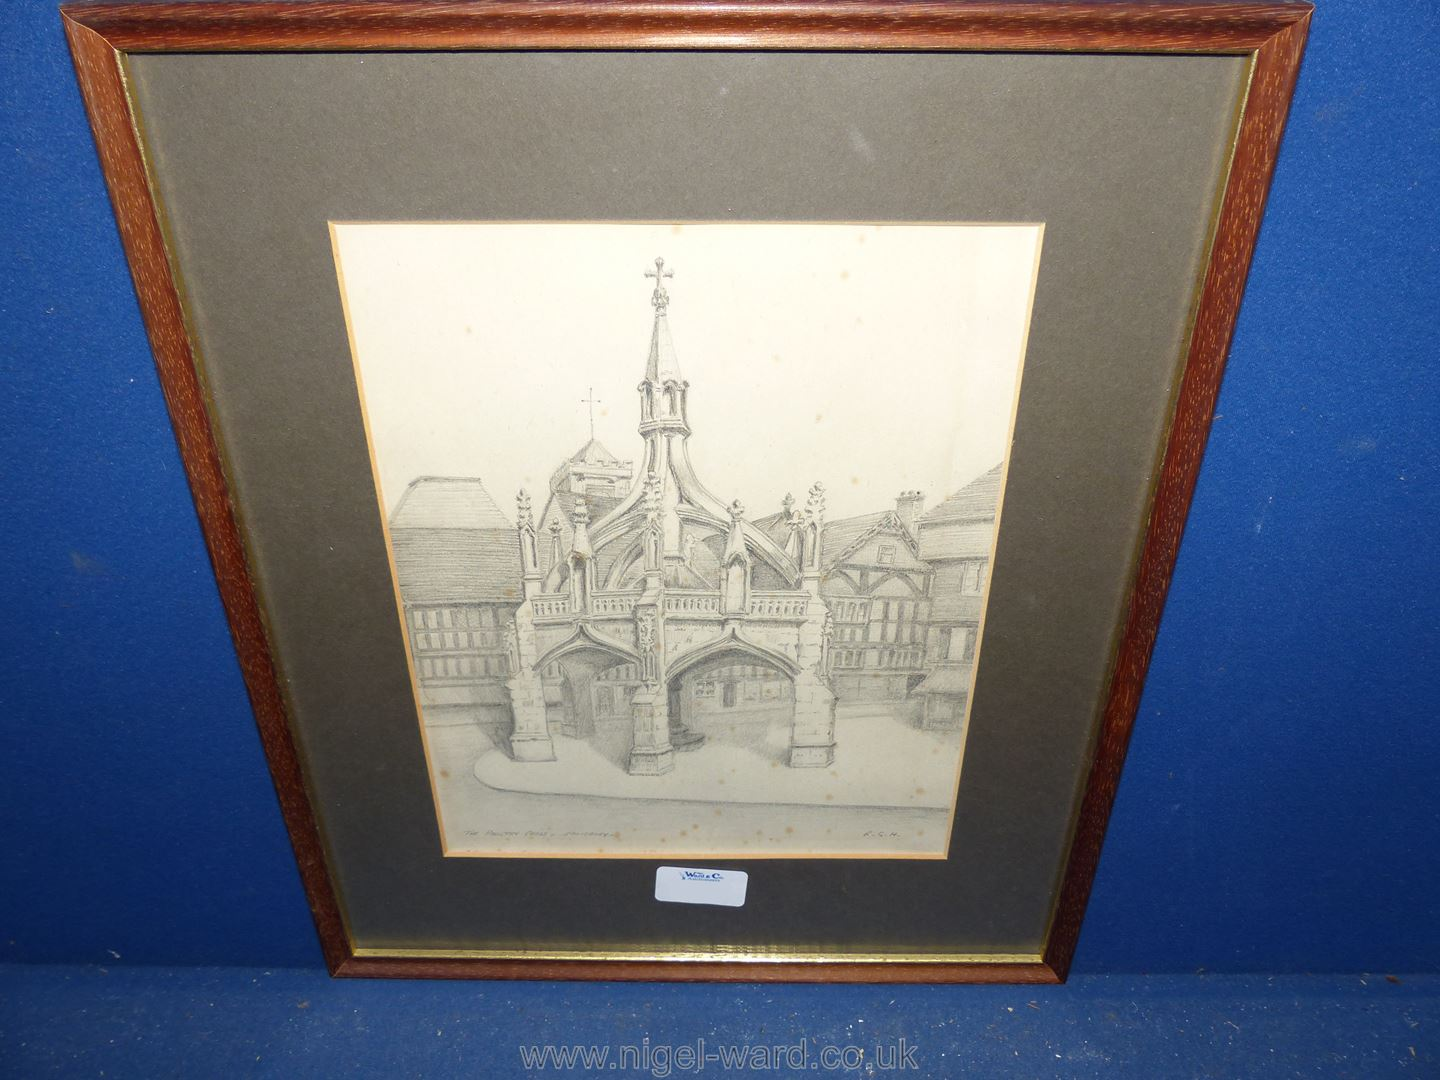 A framed and mounted pencil drawing 'The Poultry Cross, Salisbury', initialled lower right R.G.H.